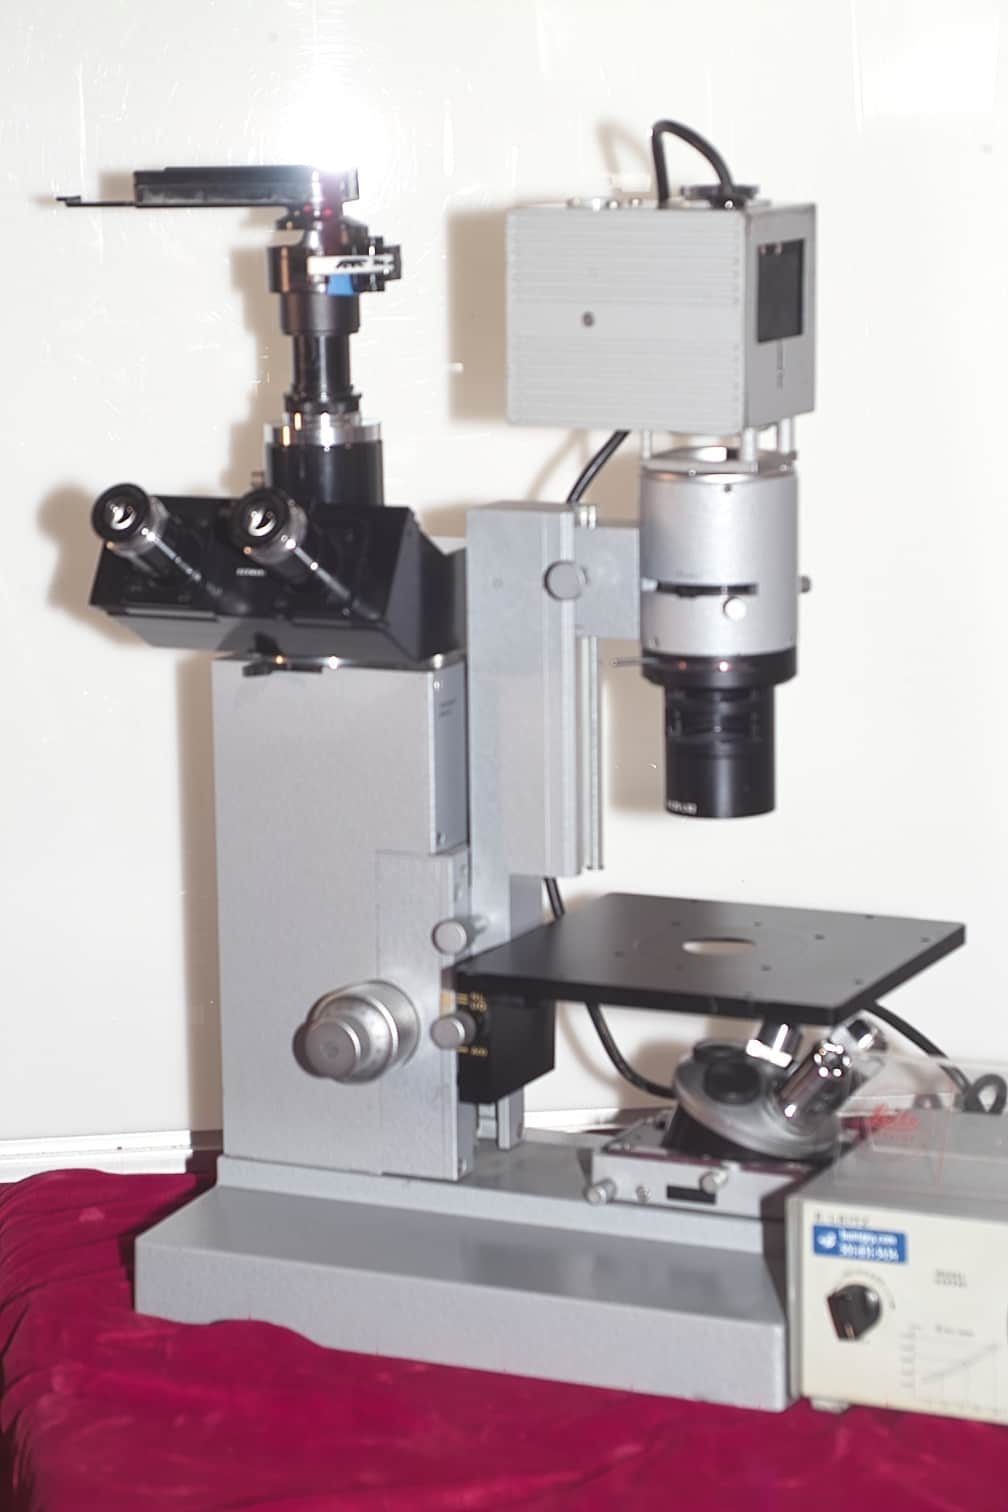 LEITZ DIAVERT INVERTED TISSUE CULTURE WORKHORSE MICROSCOPE WITH PHASE CONTRAST